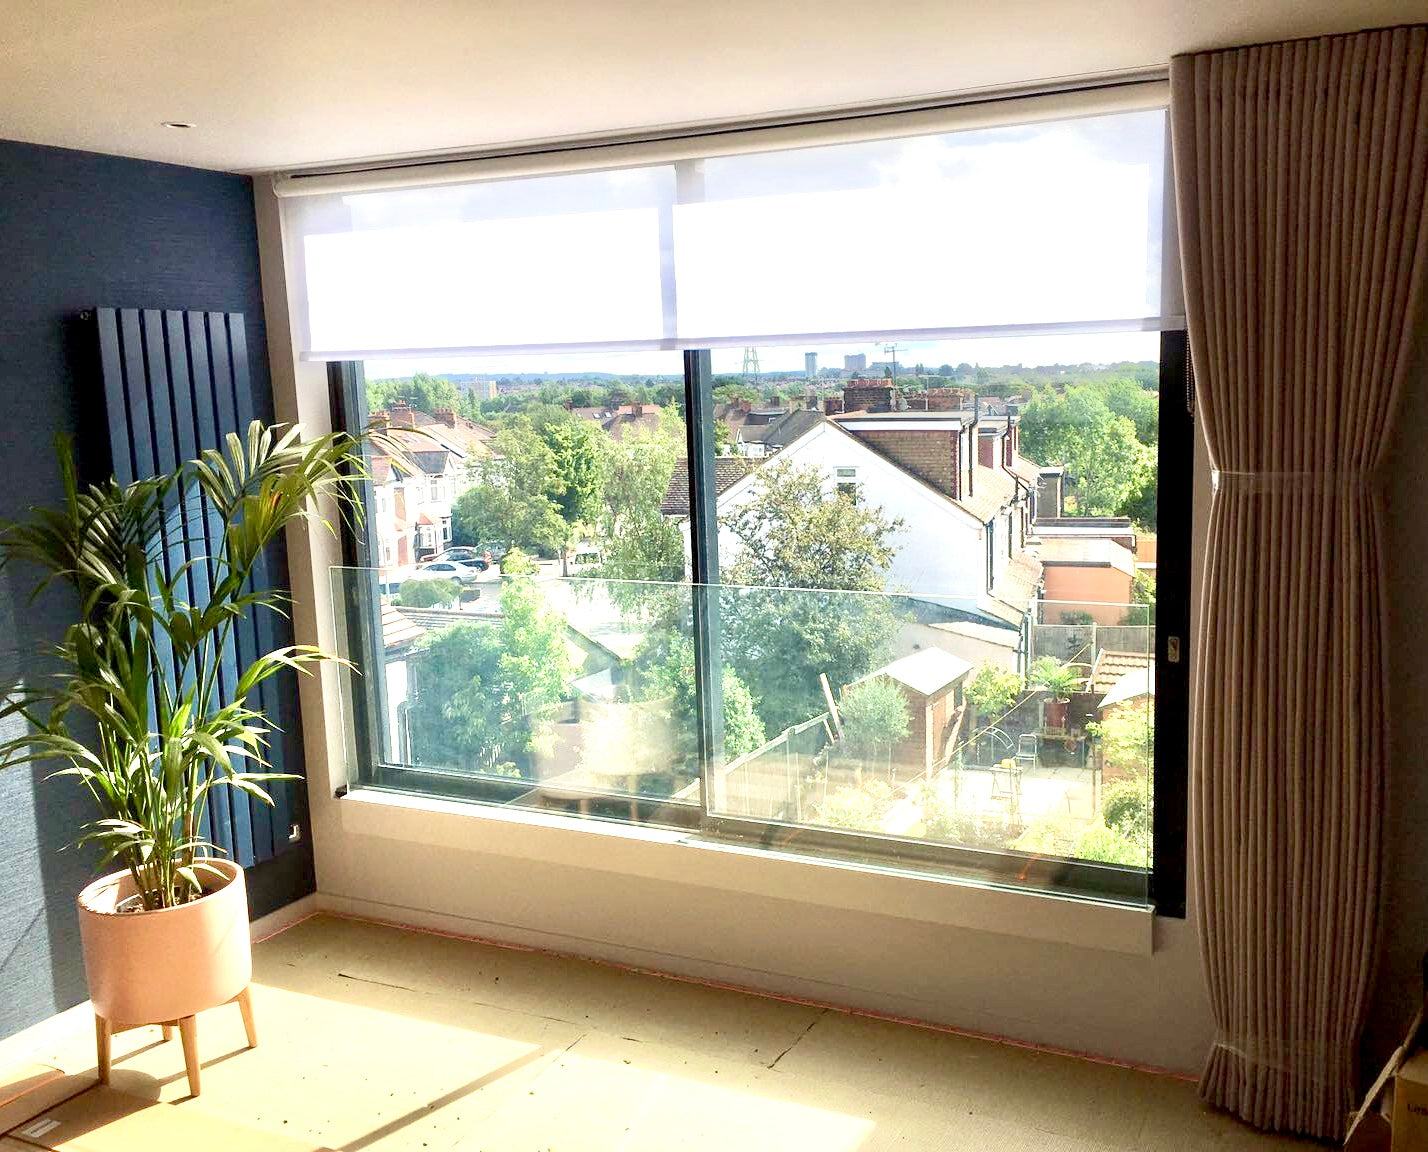 Blackout Wave Curtain with Privacy Roller Blinds on Large Loft Window